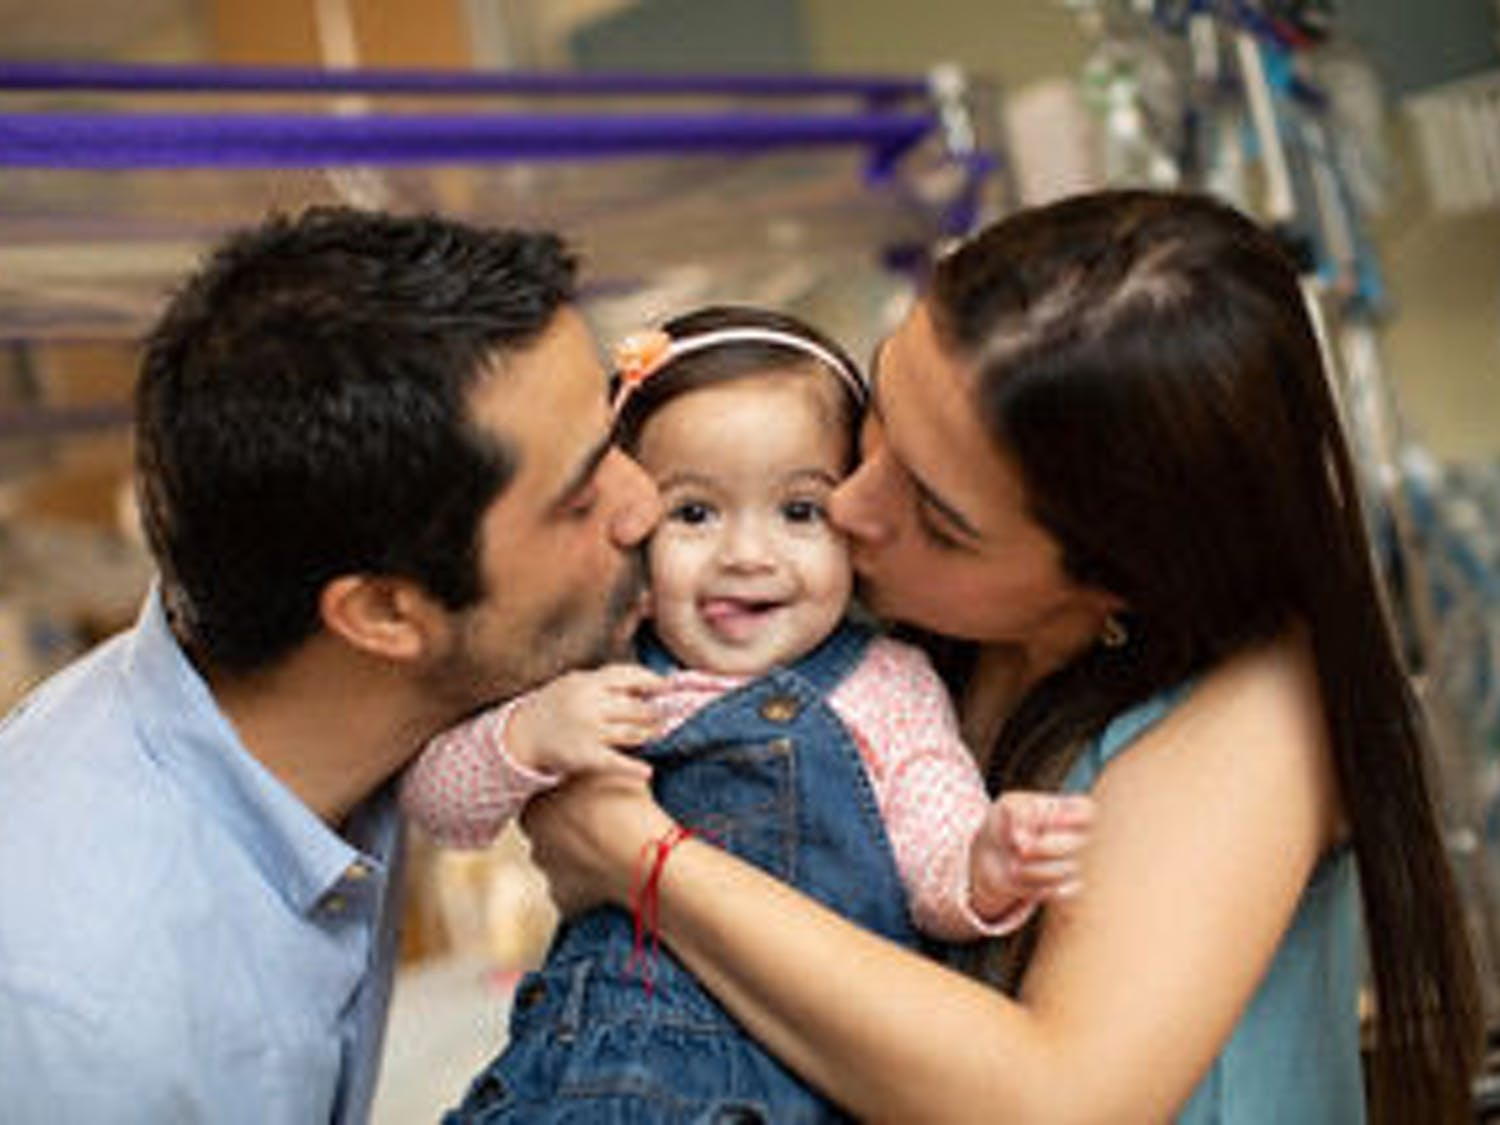 Carlos Ocampo, left, and Victoria Escobar, right, kiss their 1-year-old Valeria Ocampo, who was released from UF Health Shands hospital last Friday.